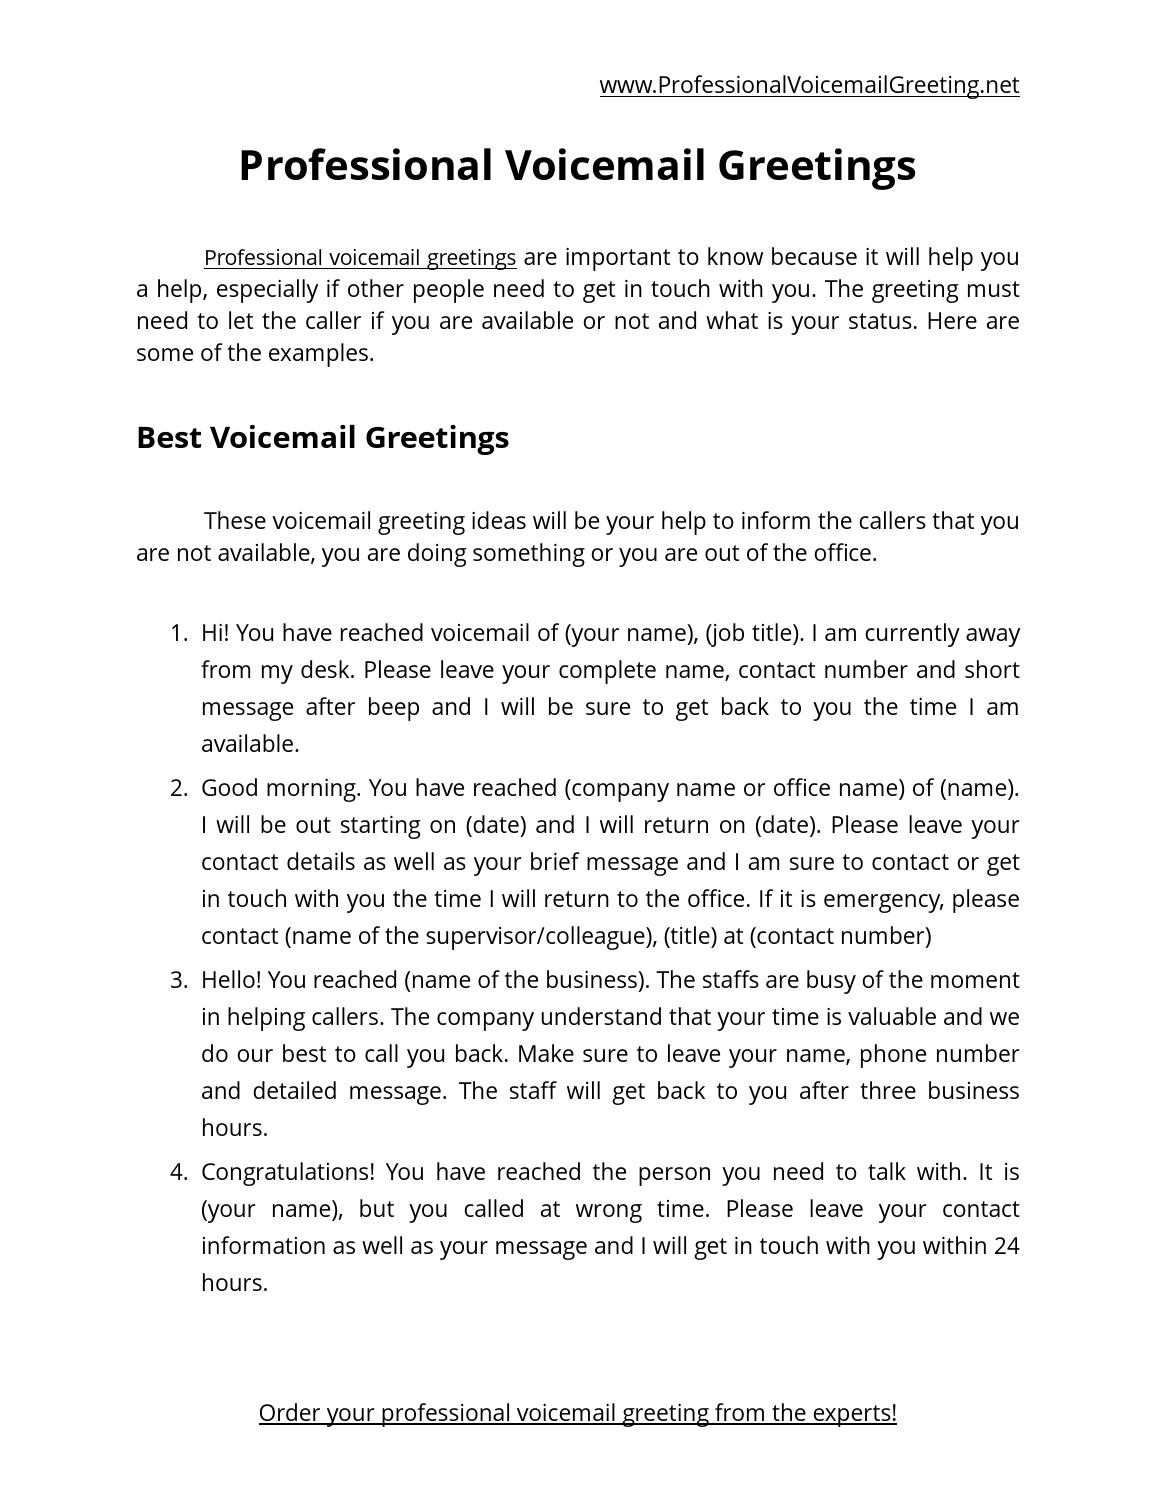 50 professional voicemail greetings by voice mail issuu kristyandbryce Gallery